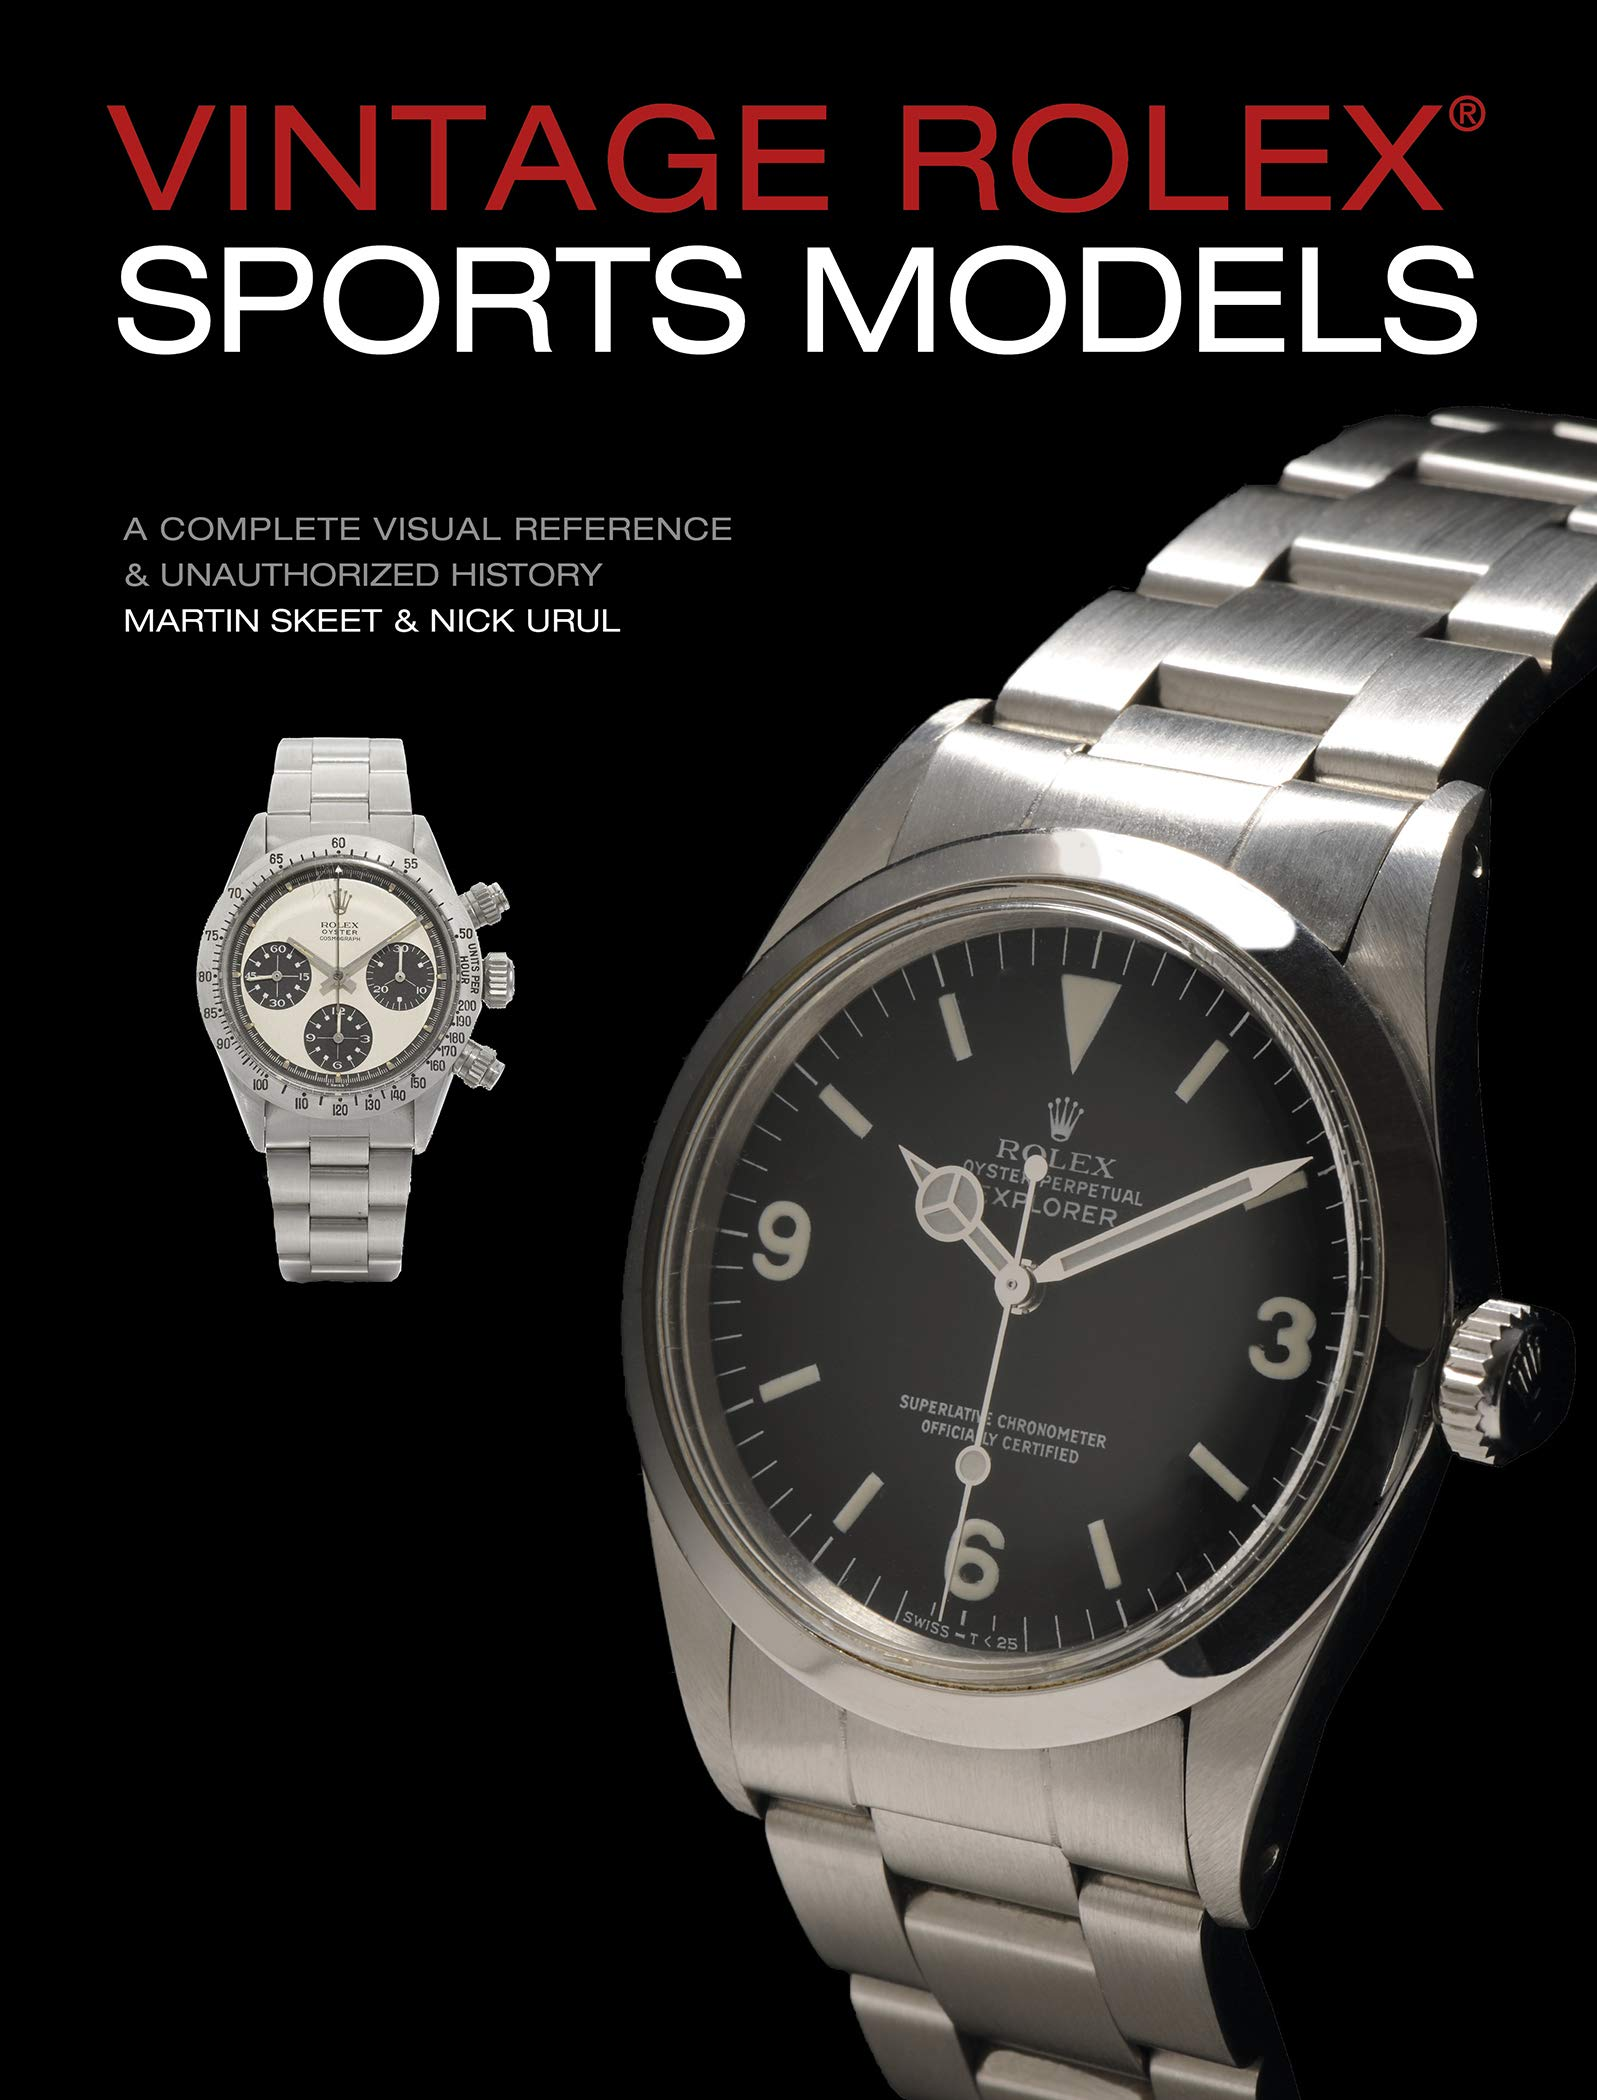 Vintage Rolex Sports Models 4th Edition: A Complete Visual Reference & Unauthorized History